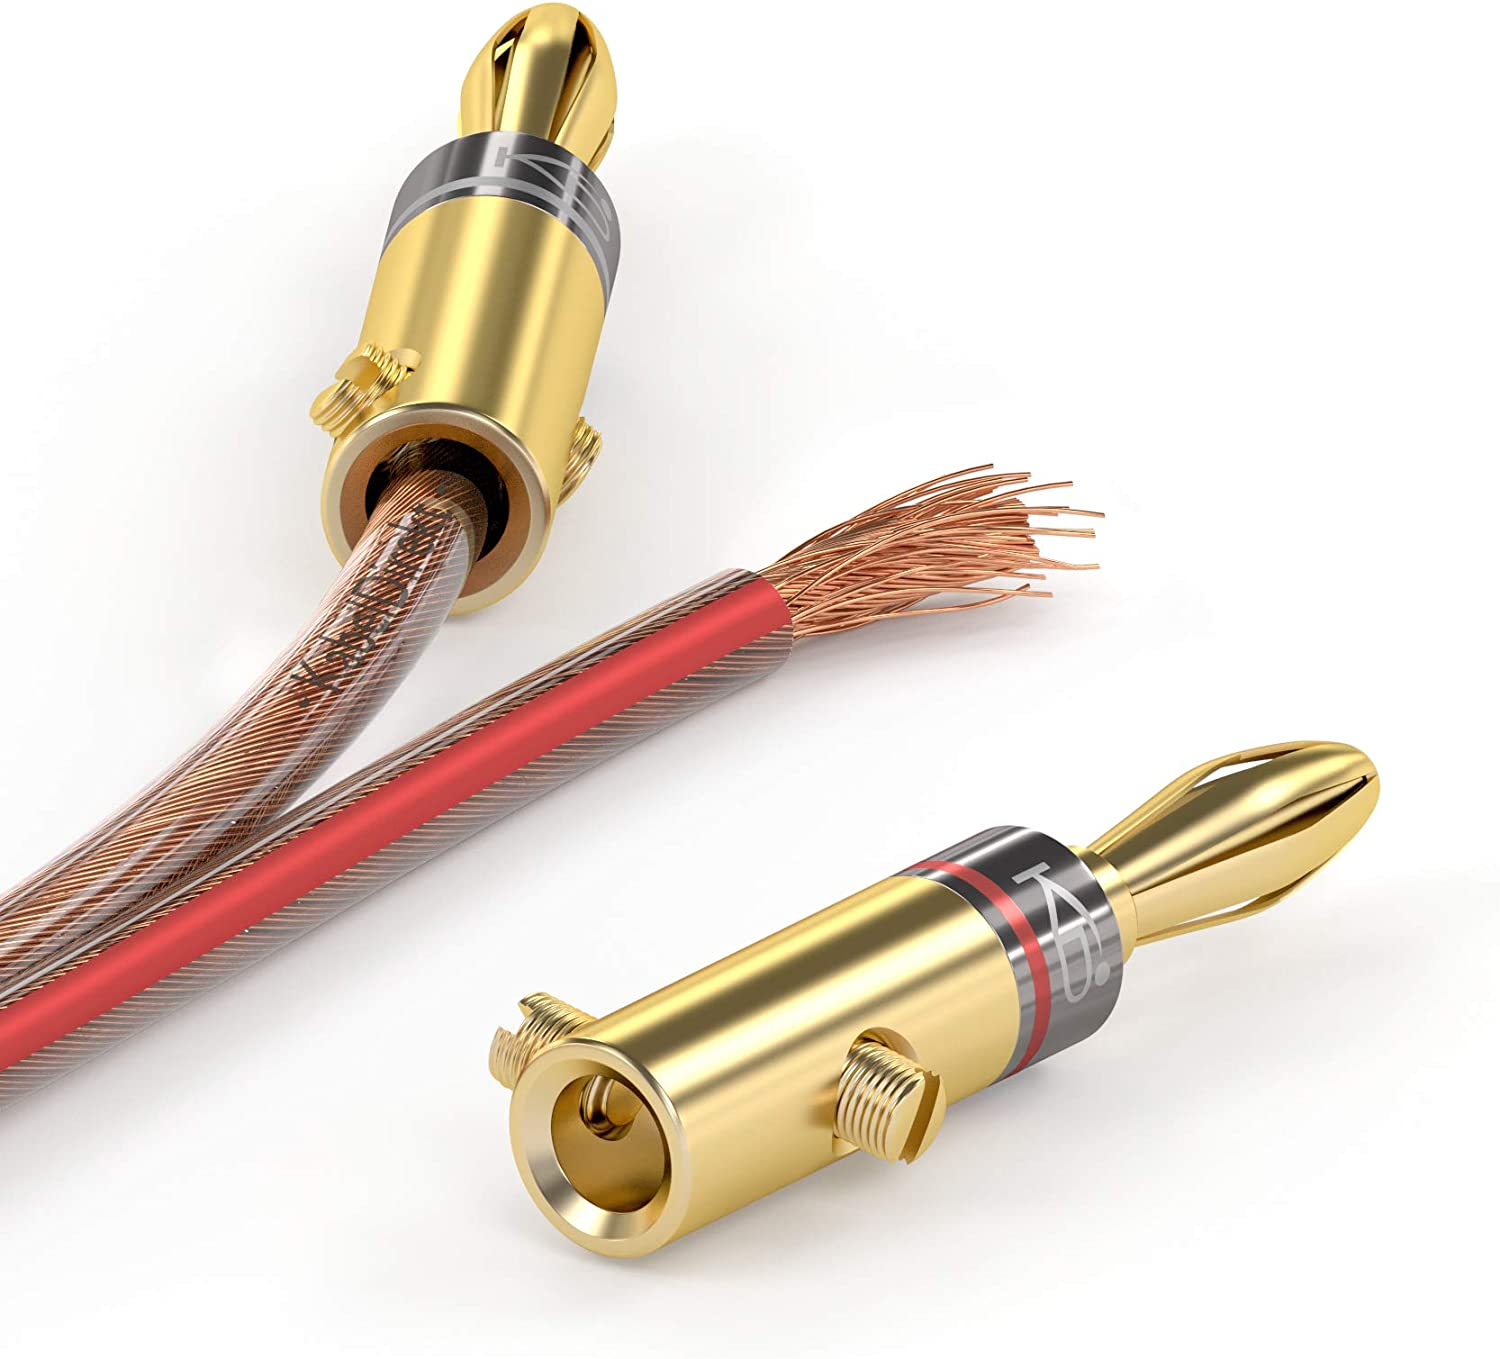 Amplifiers Suitable for Flexible Connection of the Cable to Hi-Fi Boxes 11-16 AWG AV Receivers and Sound Systems 10 Pair KabelDirekt Banana Plug Connector 24K Gold-Plated Screwable